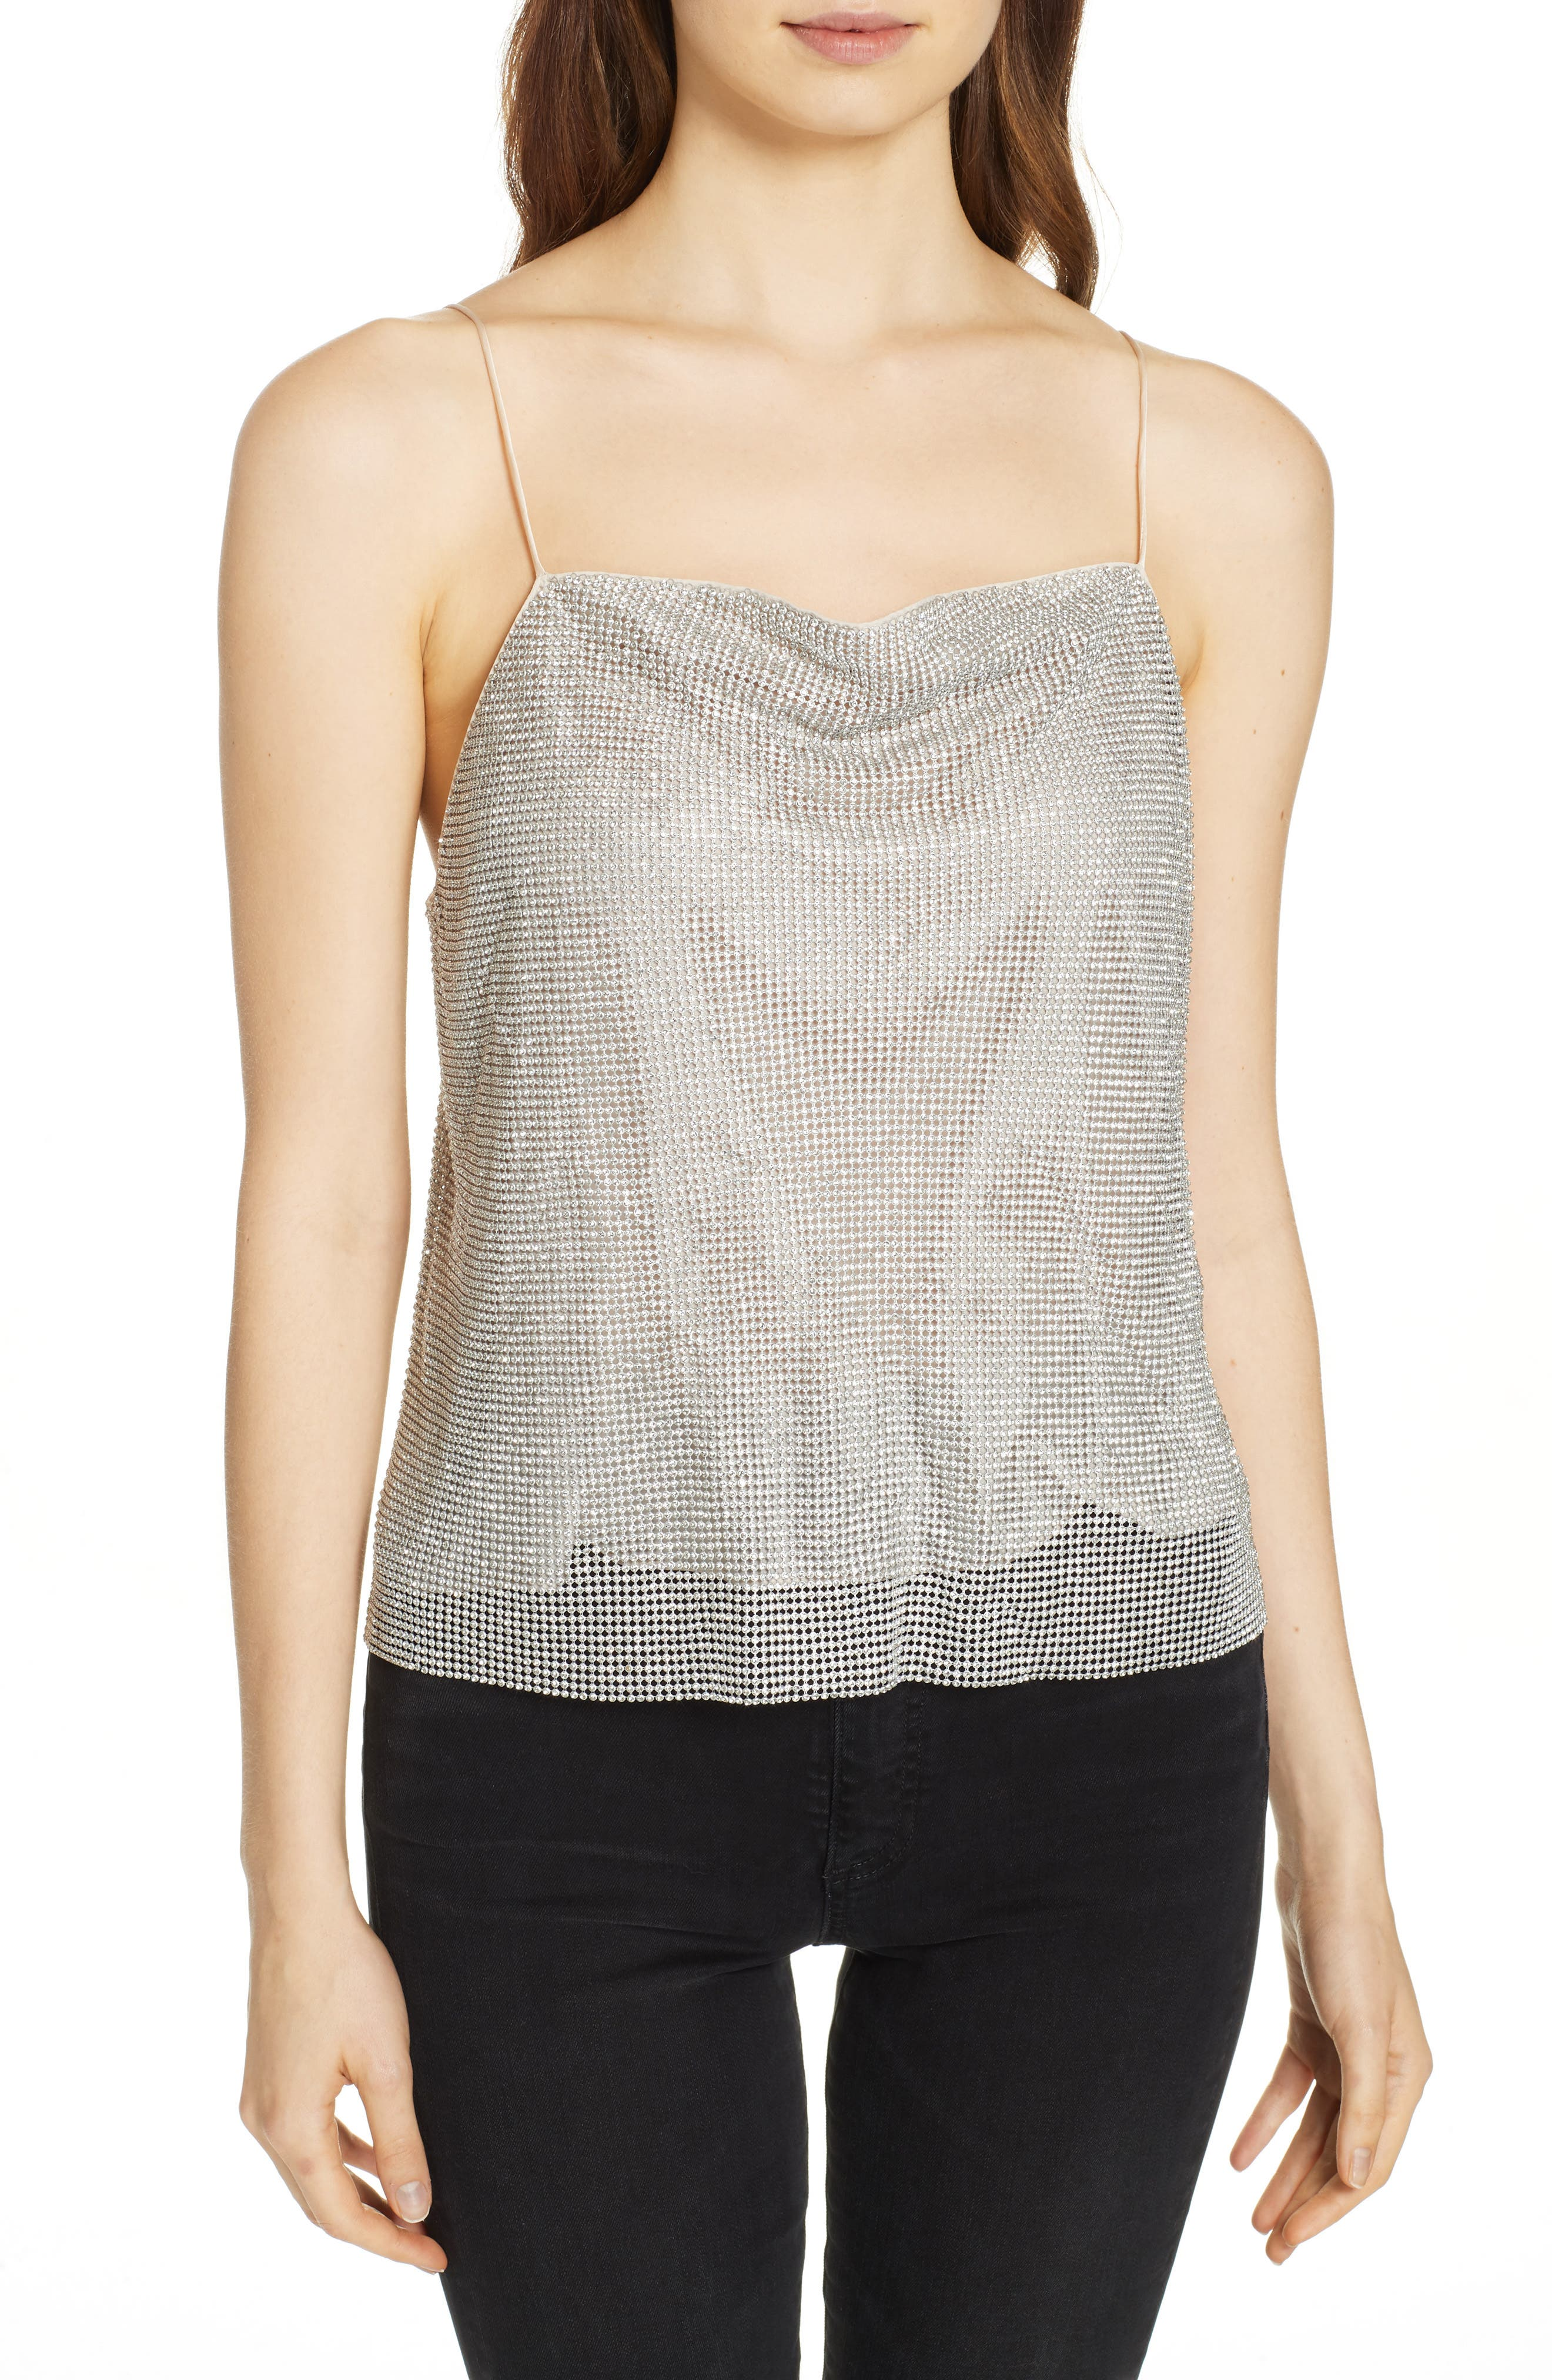 Harmon Crystal Chainmaille Camisole,                         Main,                         color, SILVER/ CHAINMAIL